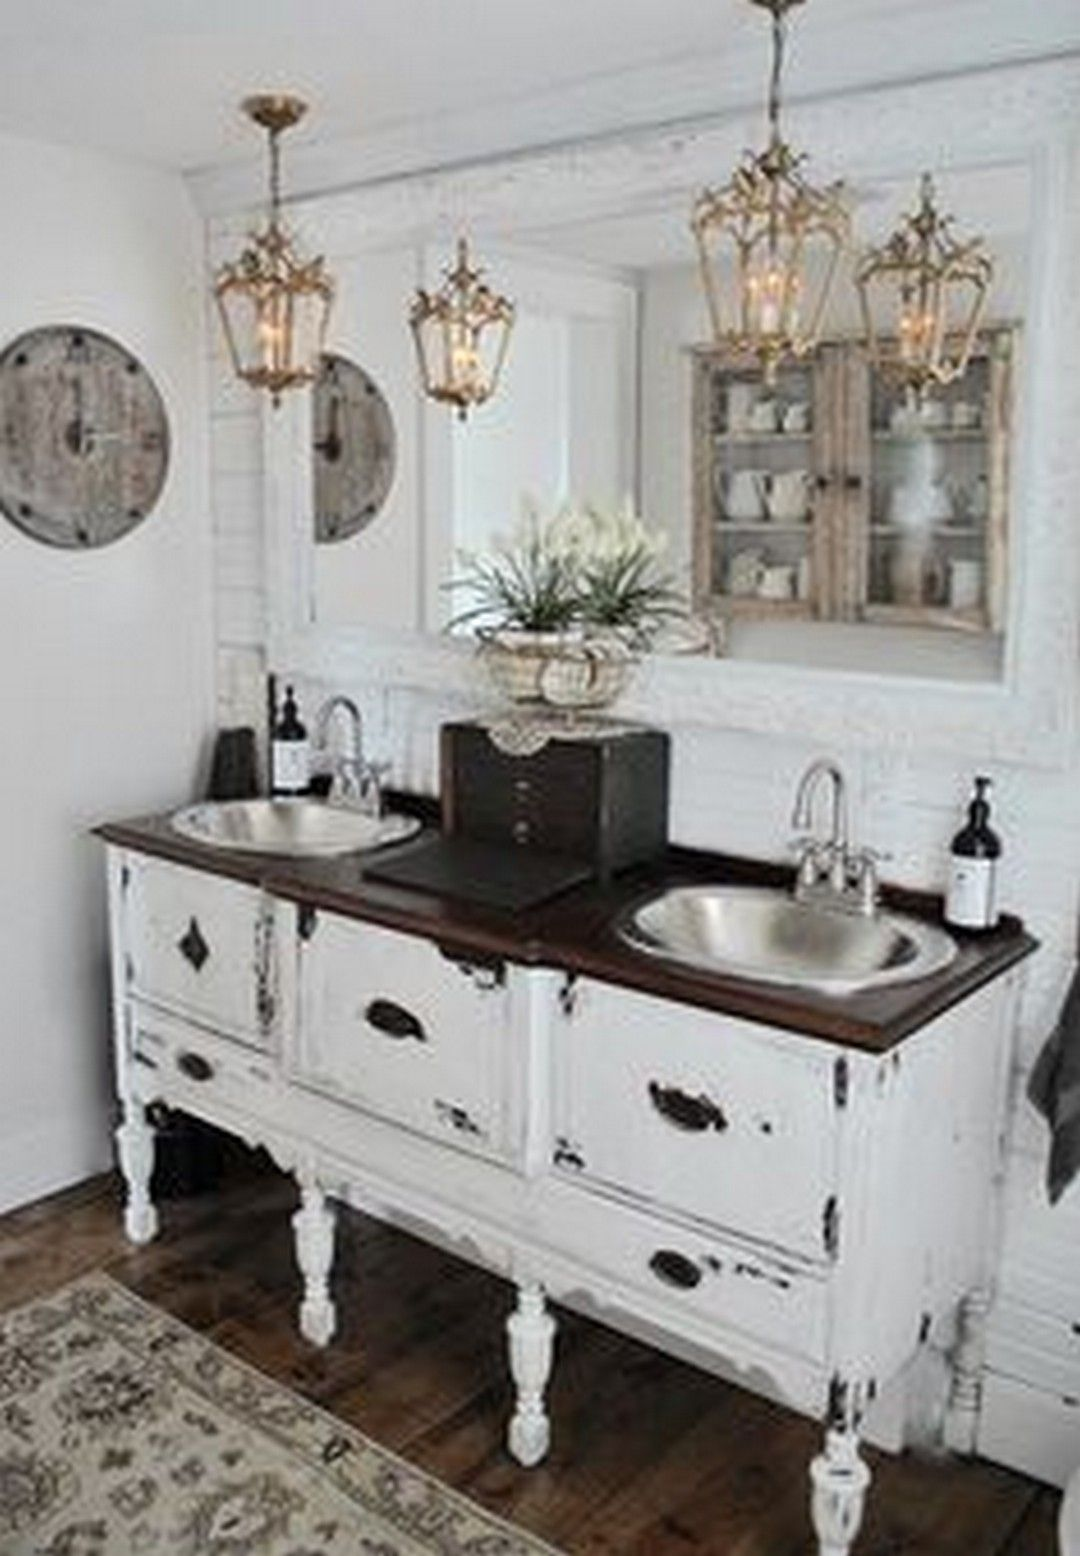 Choose Antique Farmhouse Bathroom Design in every home